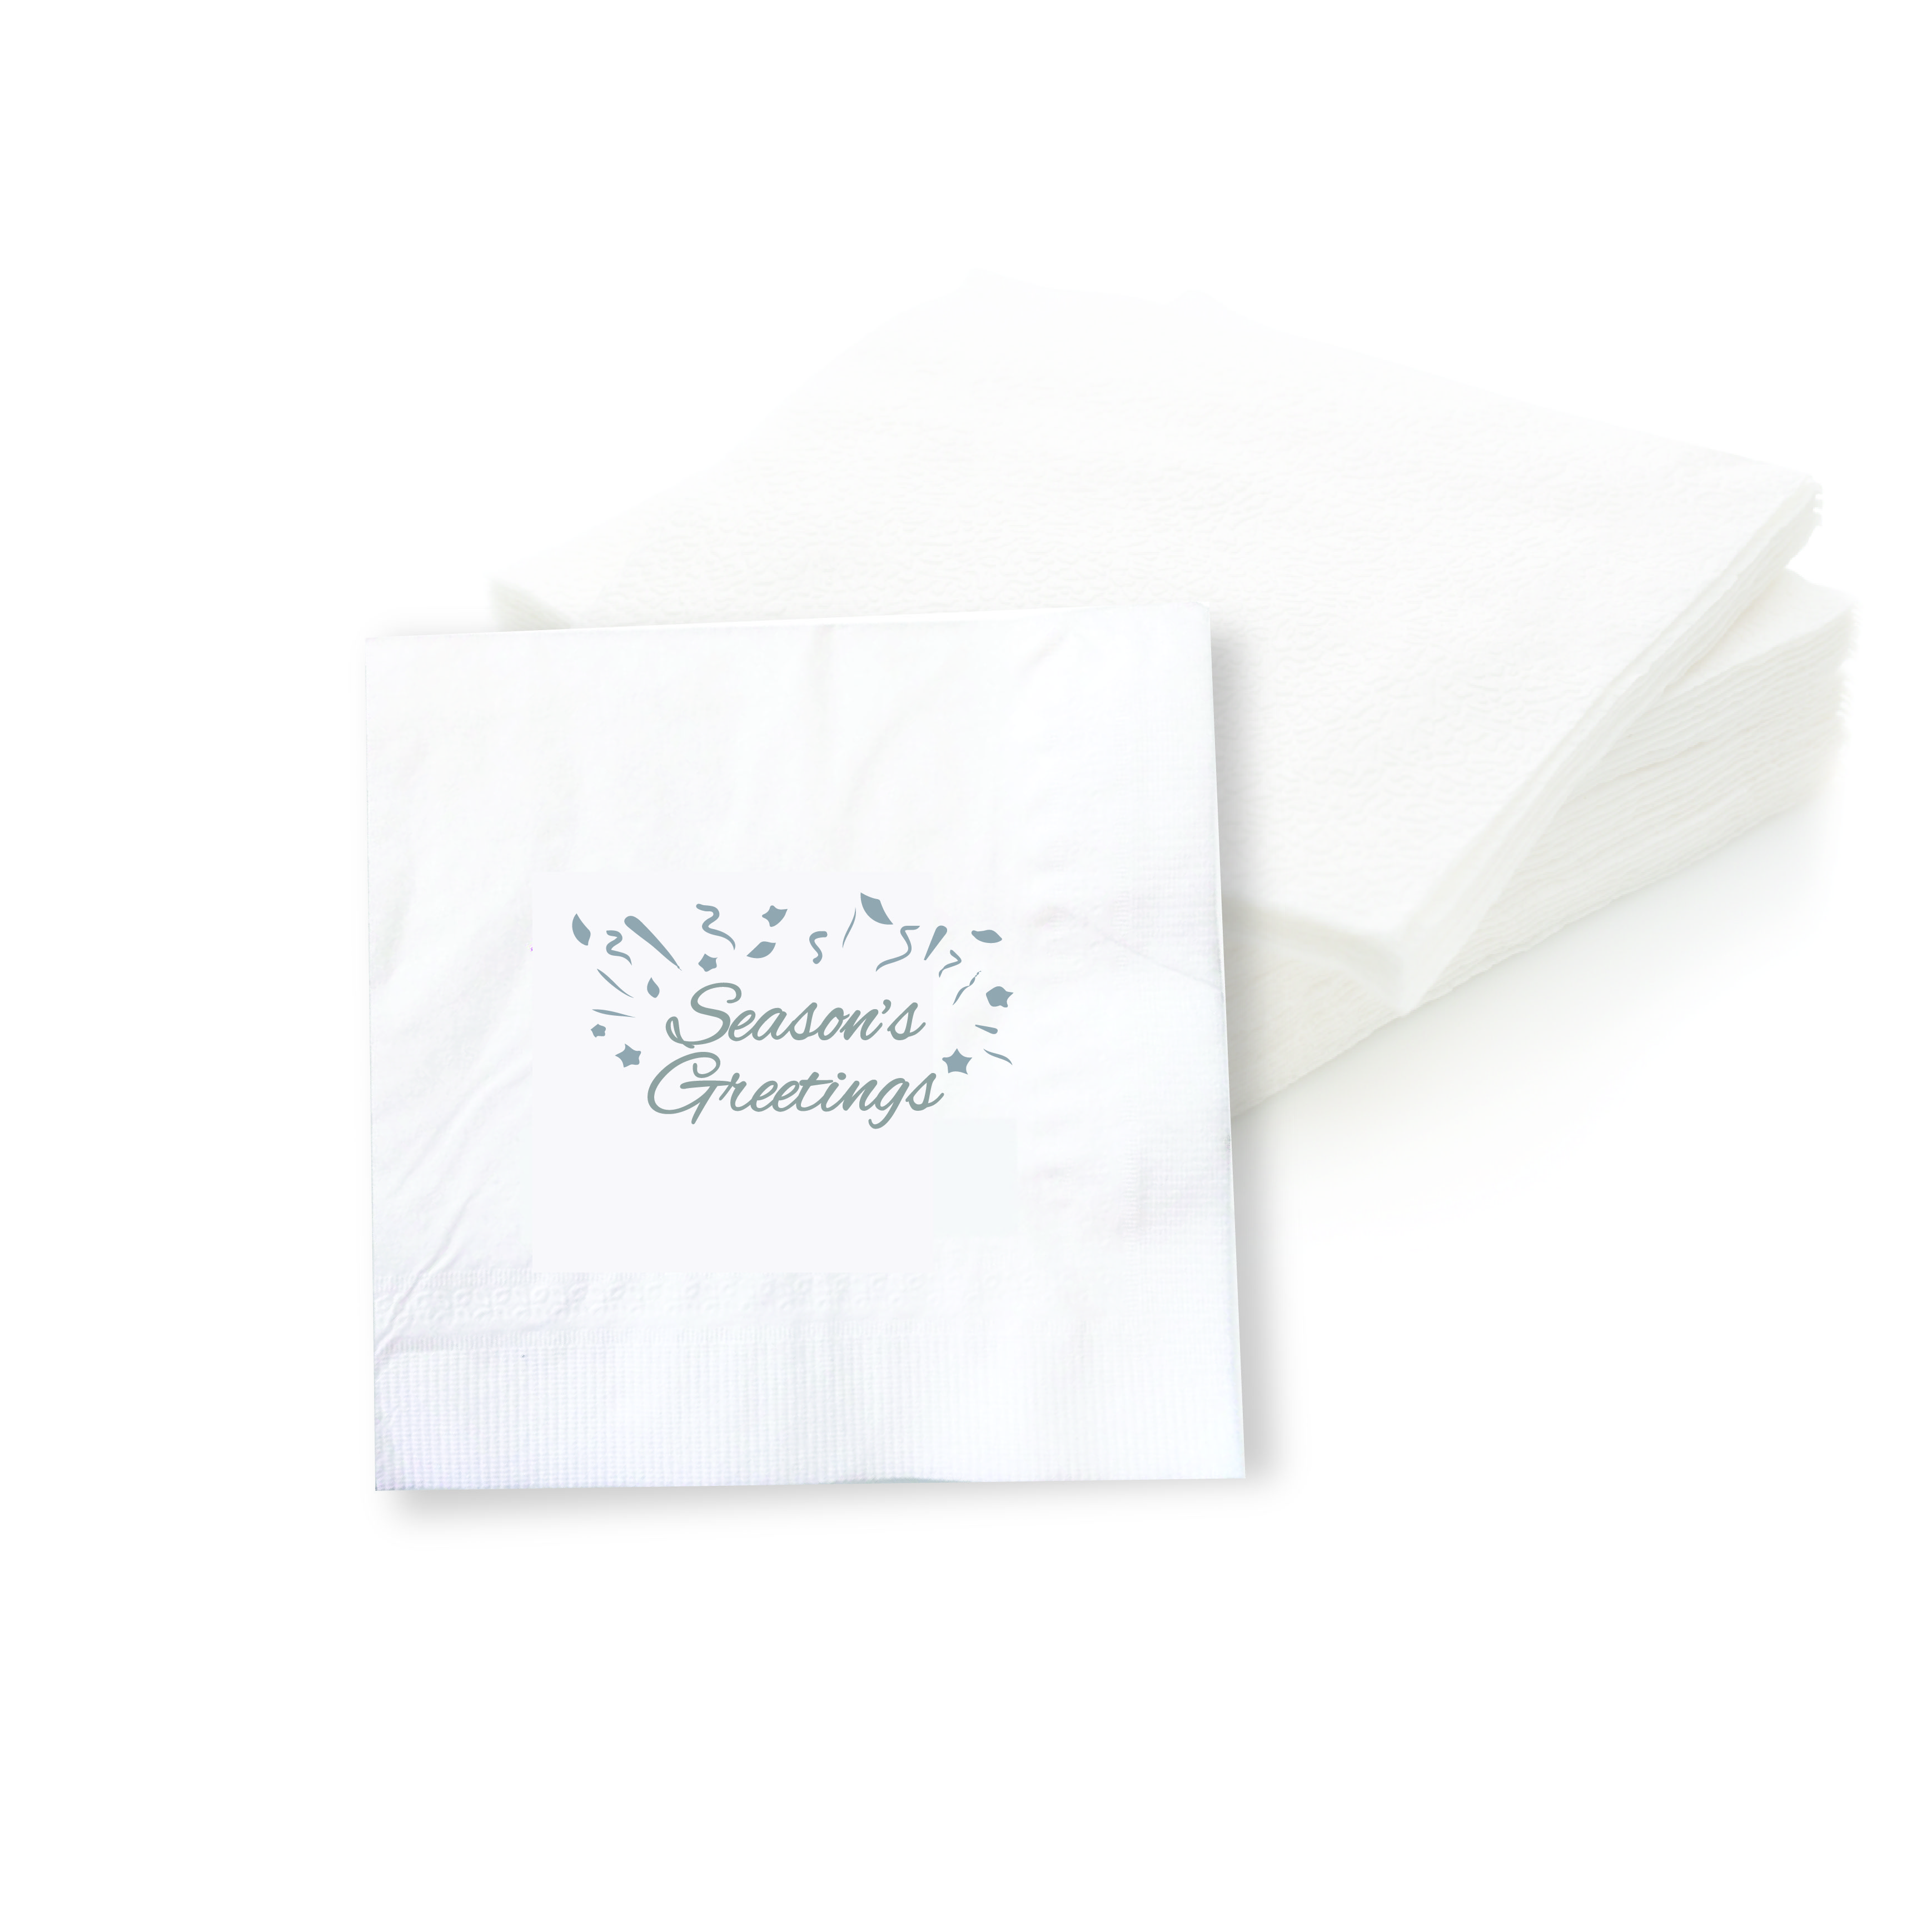 Season's Greetings Cocktail Napkins (Set of 50 Pieces)